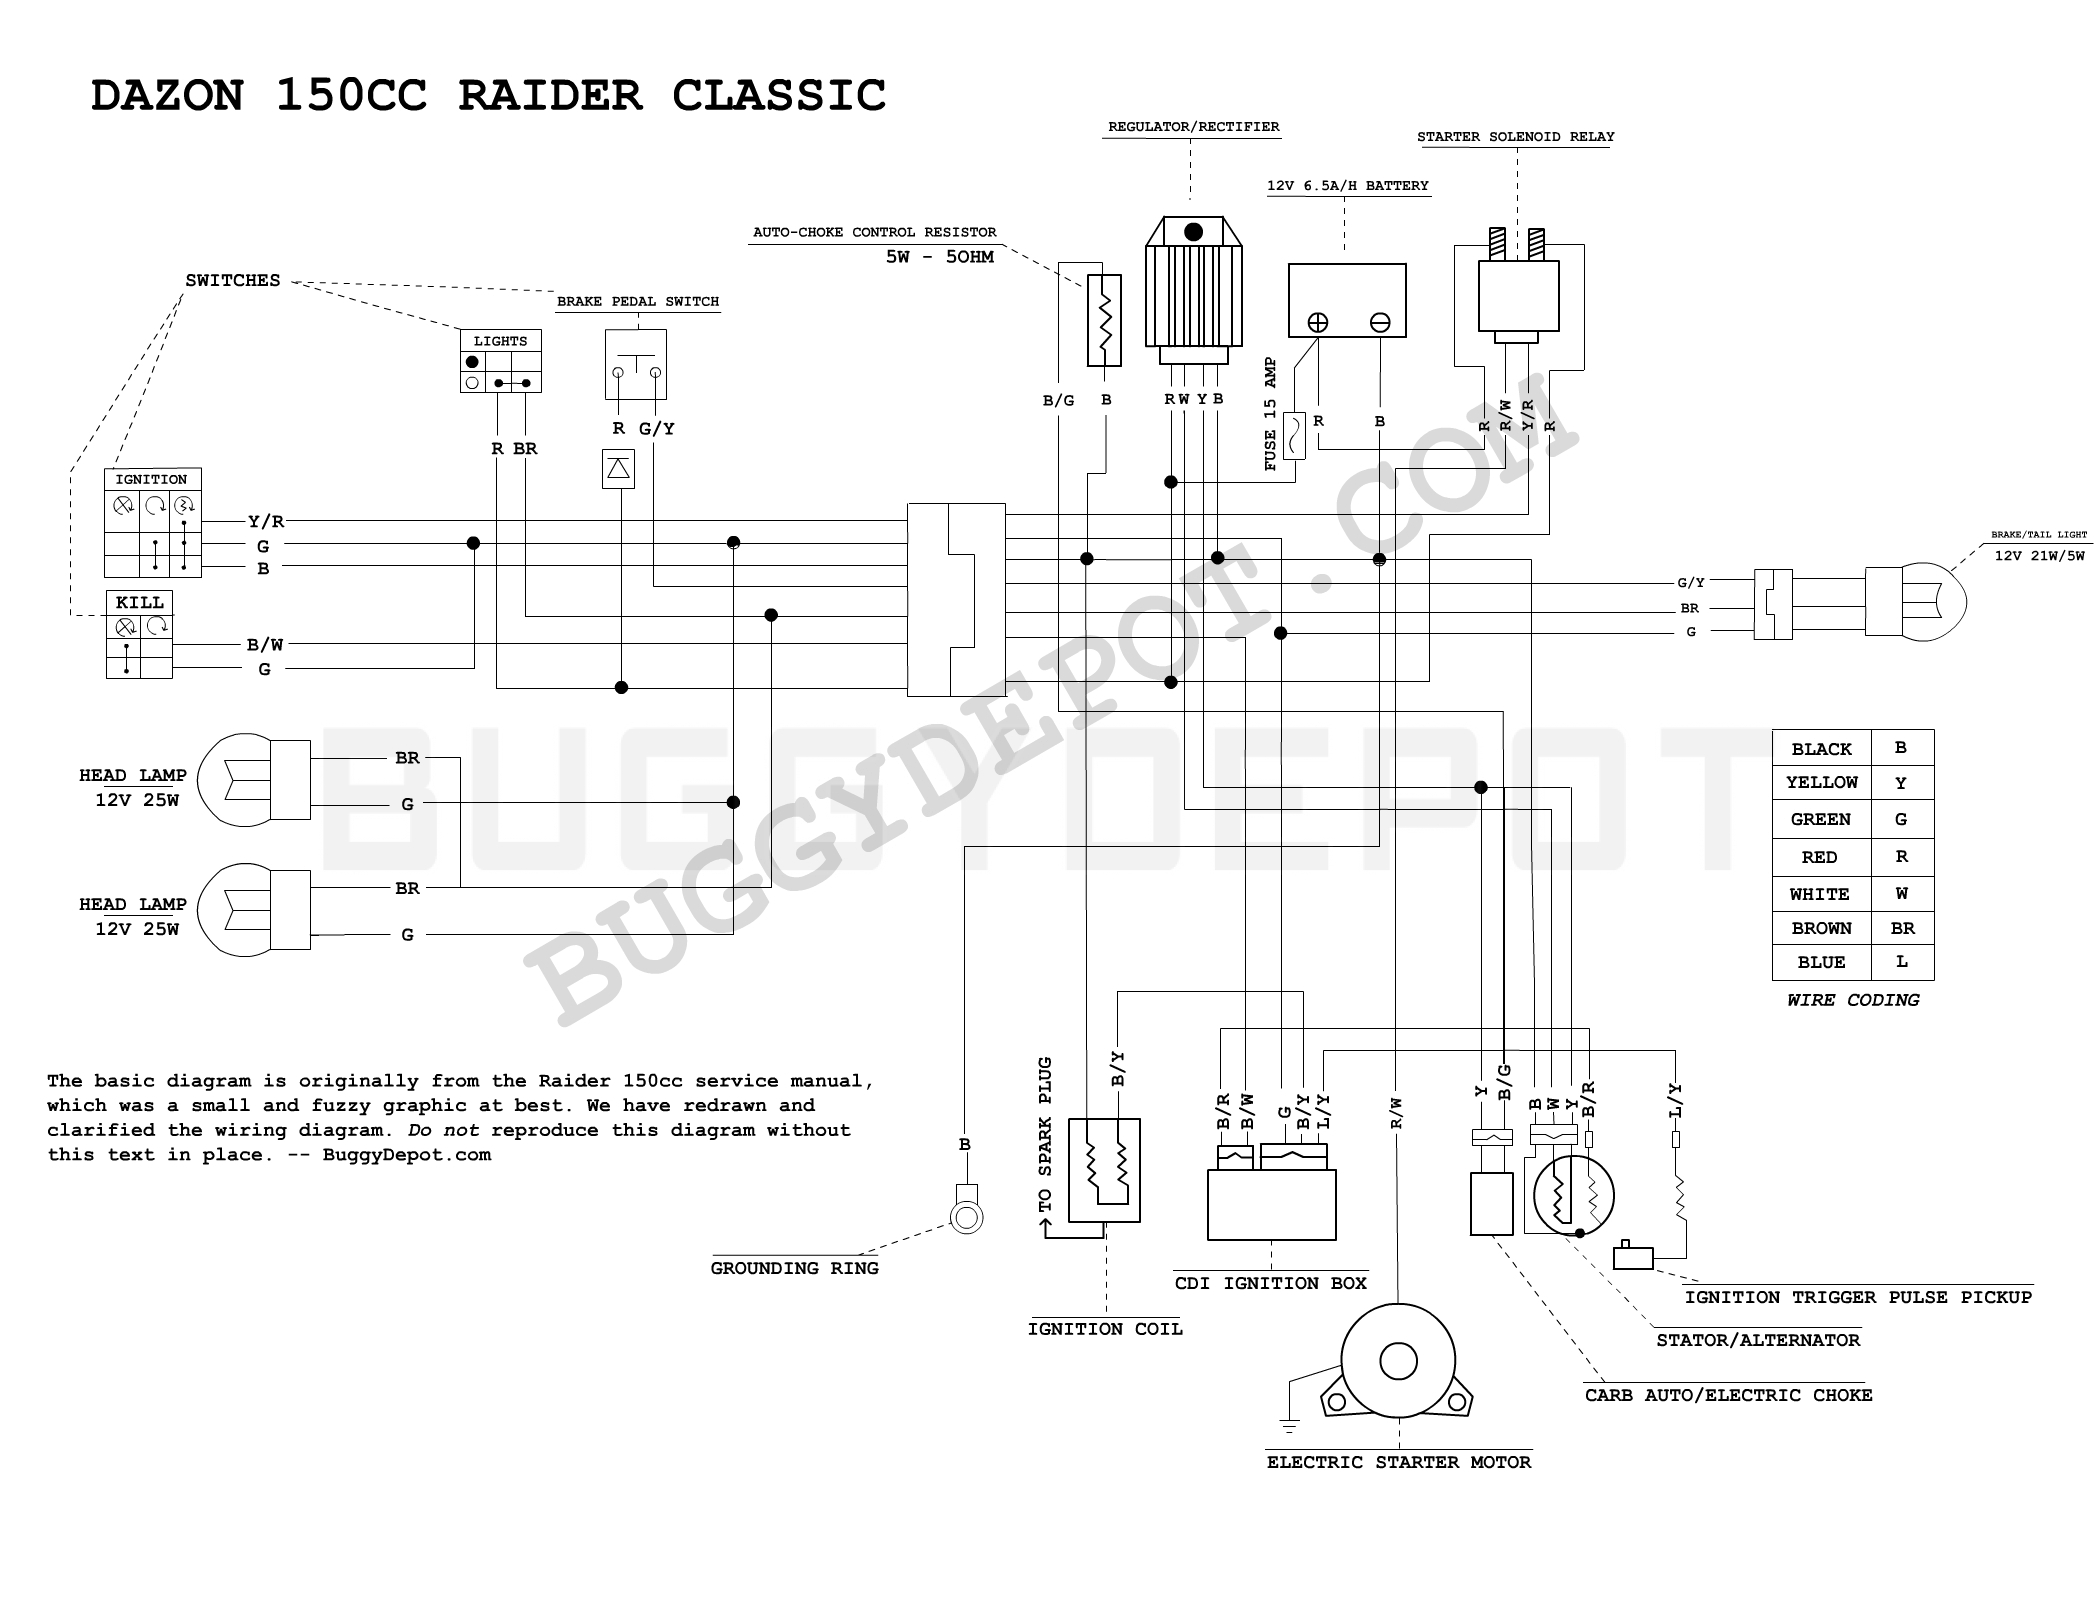 article_33_1278205207 dazon raider classic wiring diagram buggy depot technical center hammerhead 150 wiring harness at bayanpartner.co